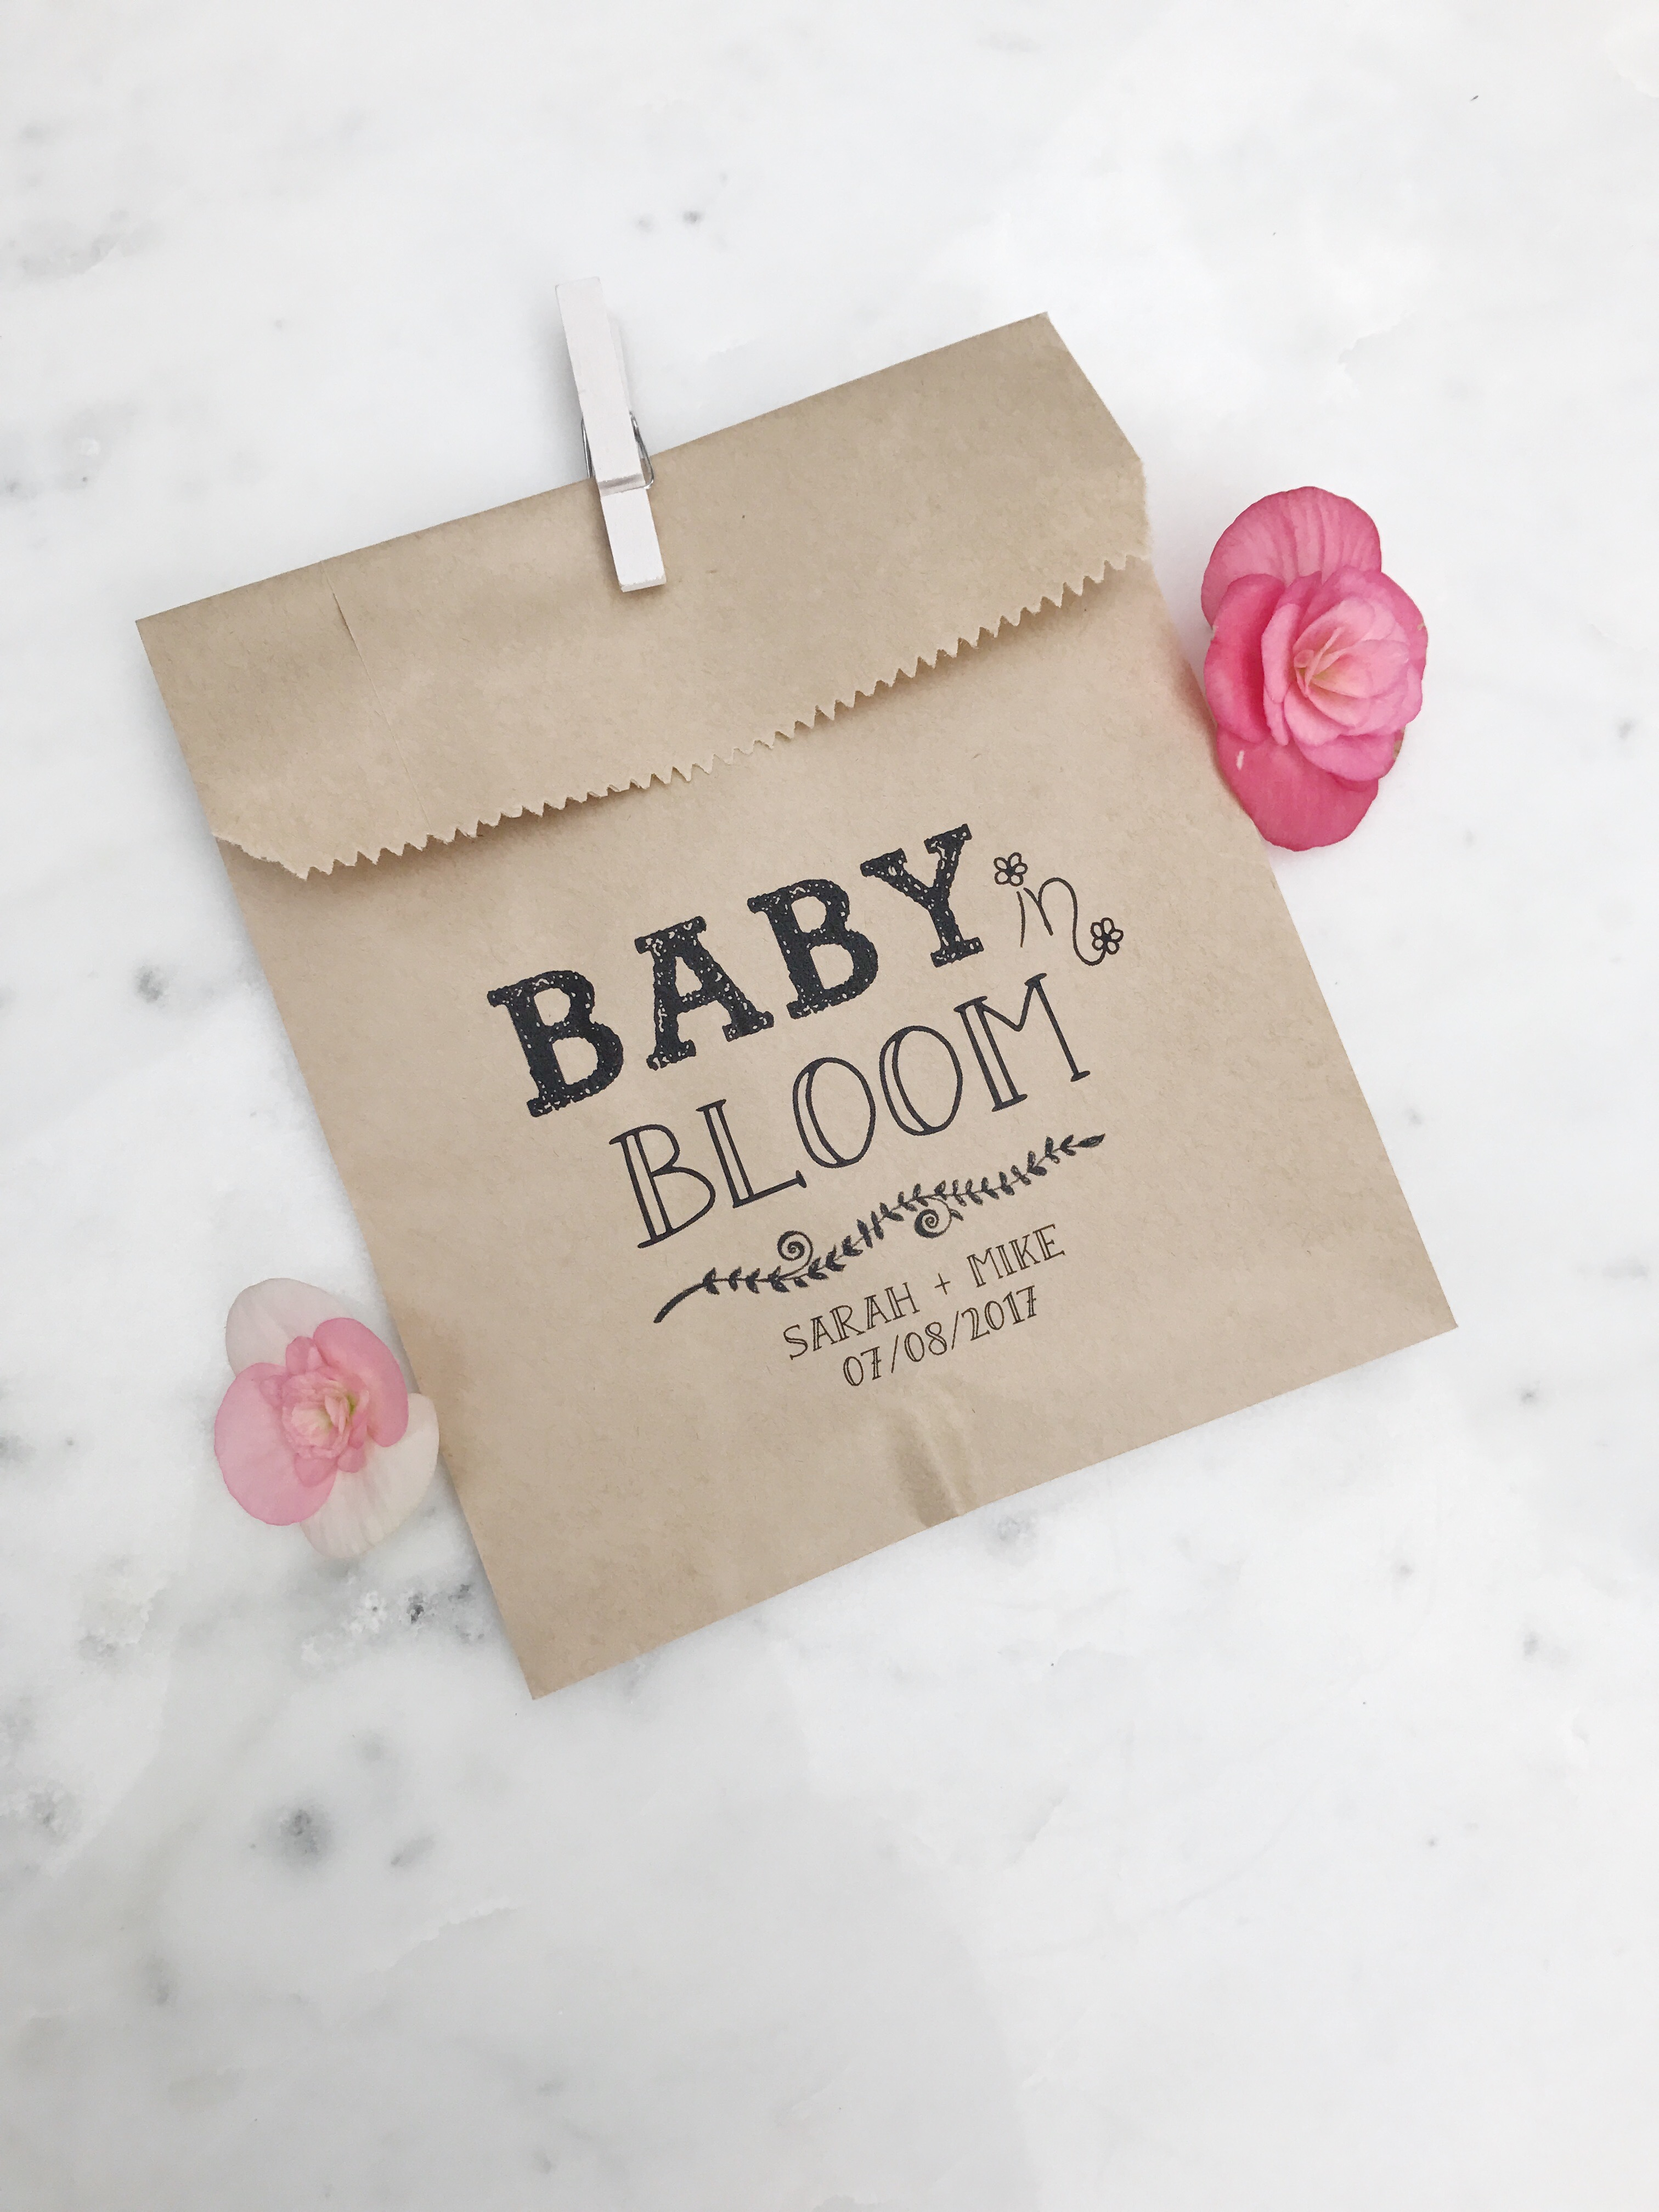 Baby in Bloom! Baby Shower Favor Bags - SALTED Design Studio